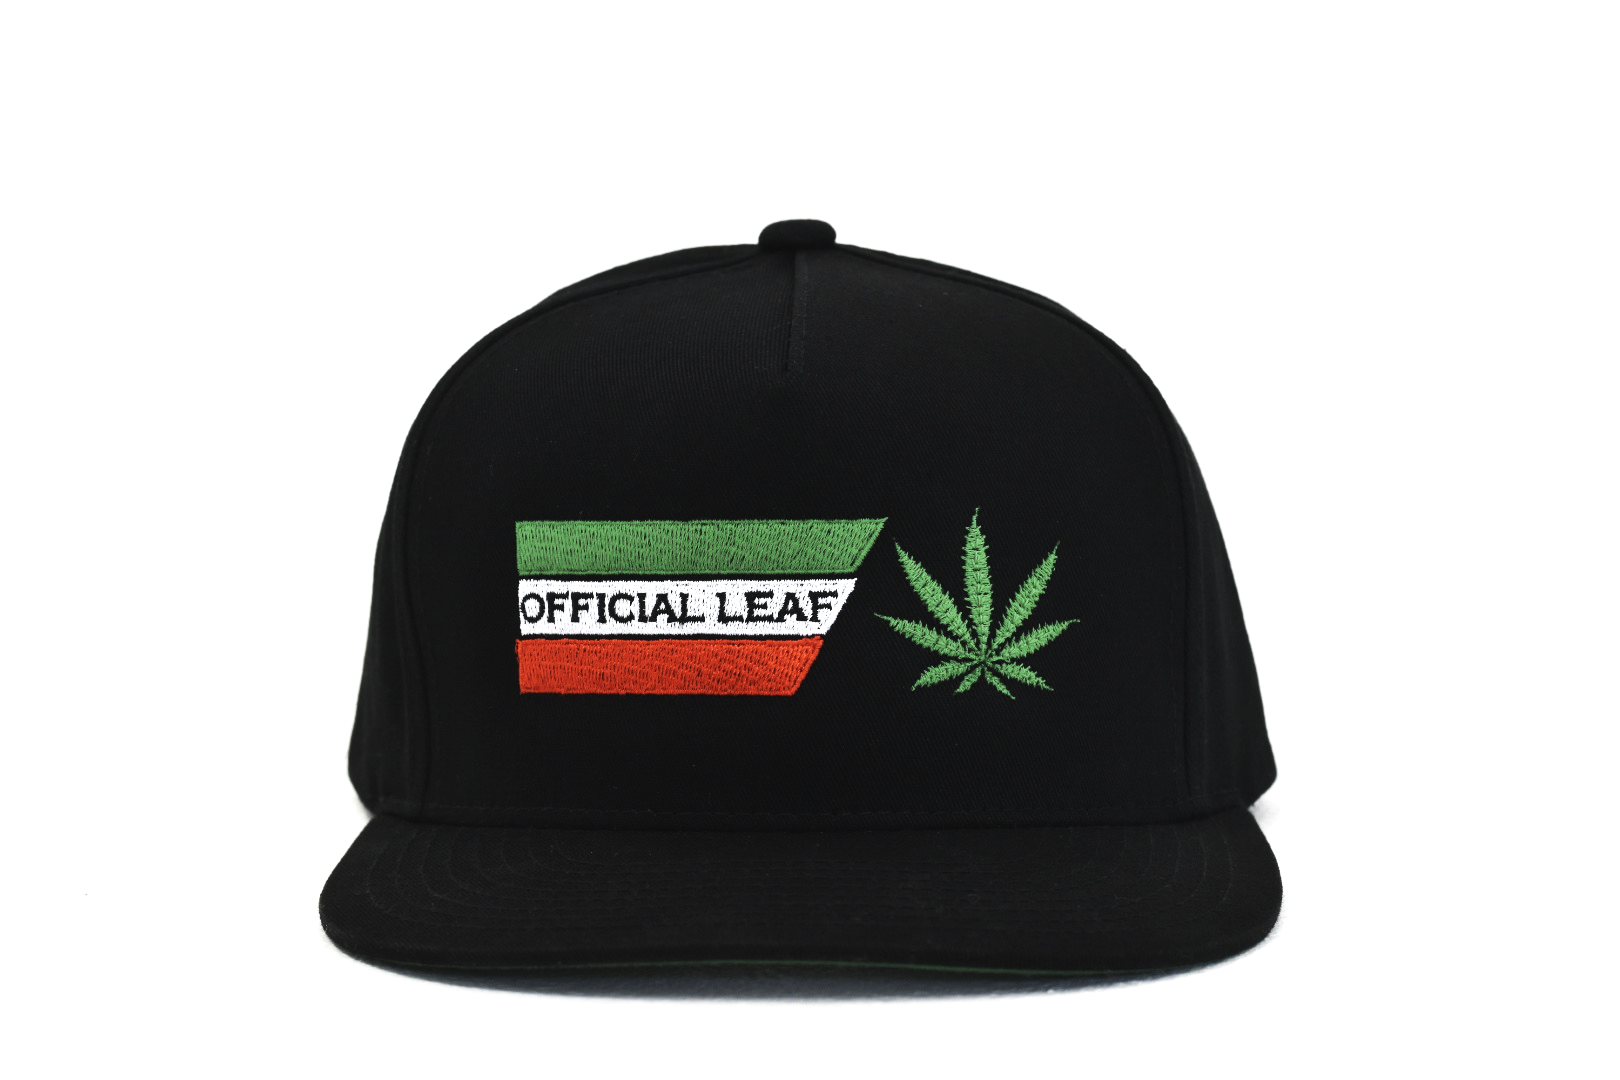 Black Official Leaf Hat Mexico Stripes